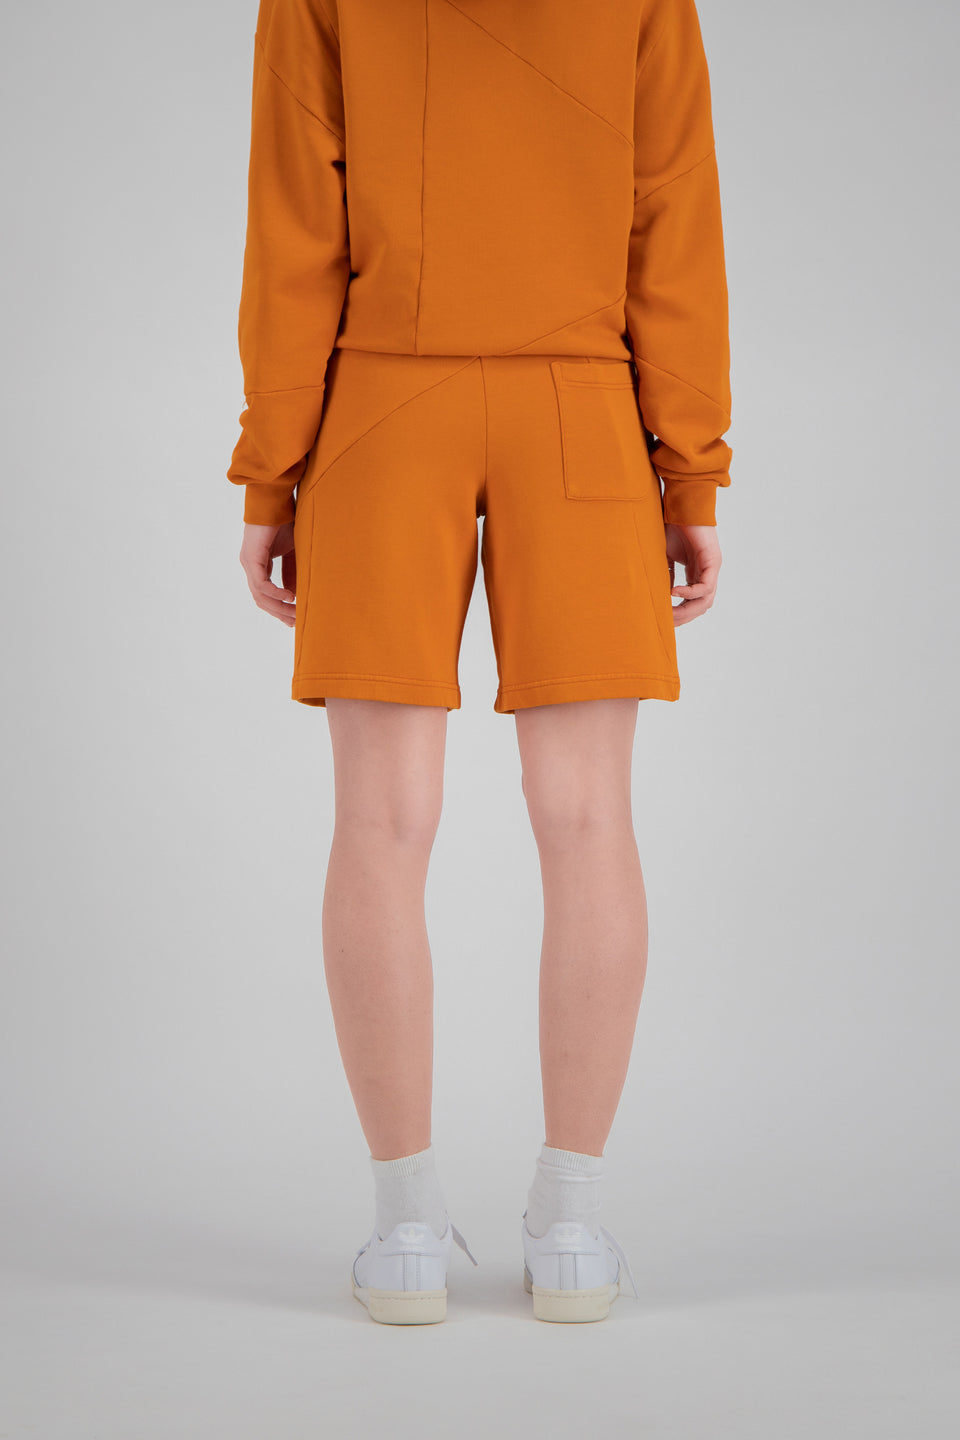 RSFxDC Decontructed Terry Shorts Rusty Orange